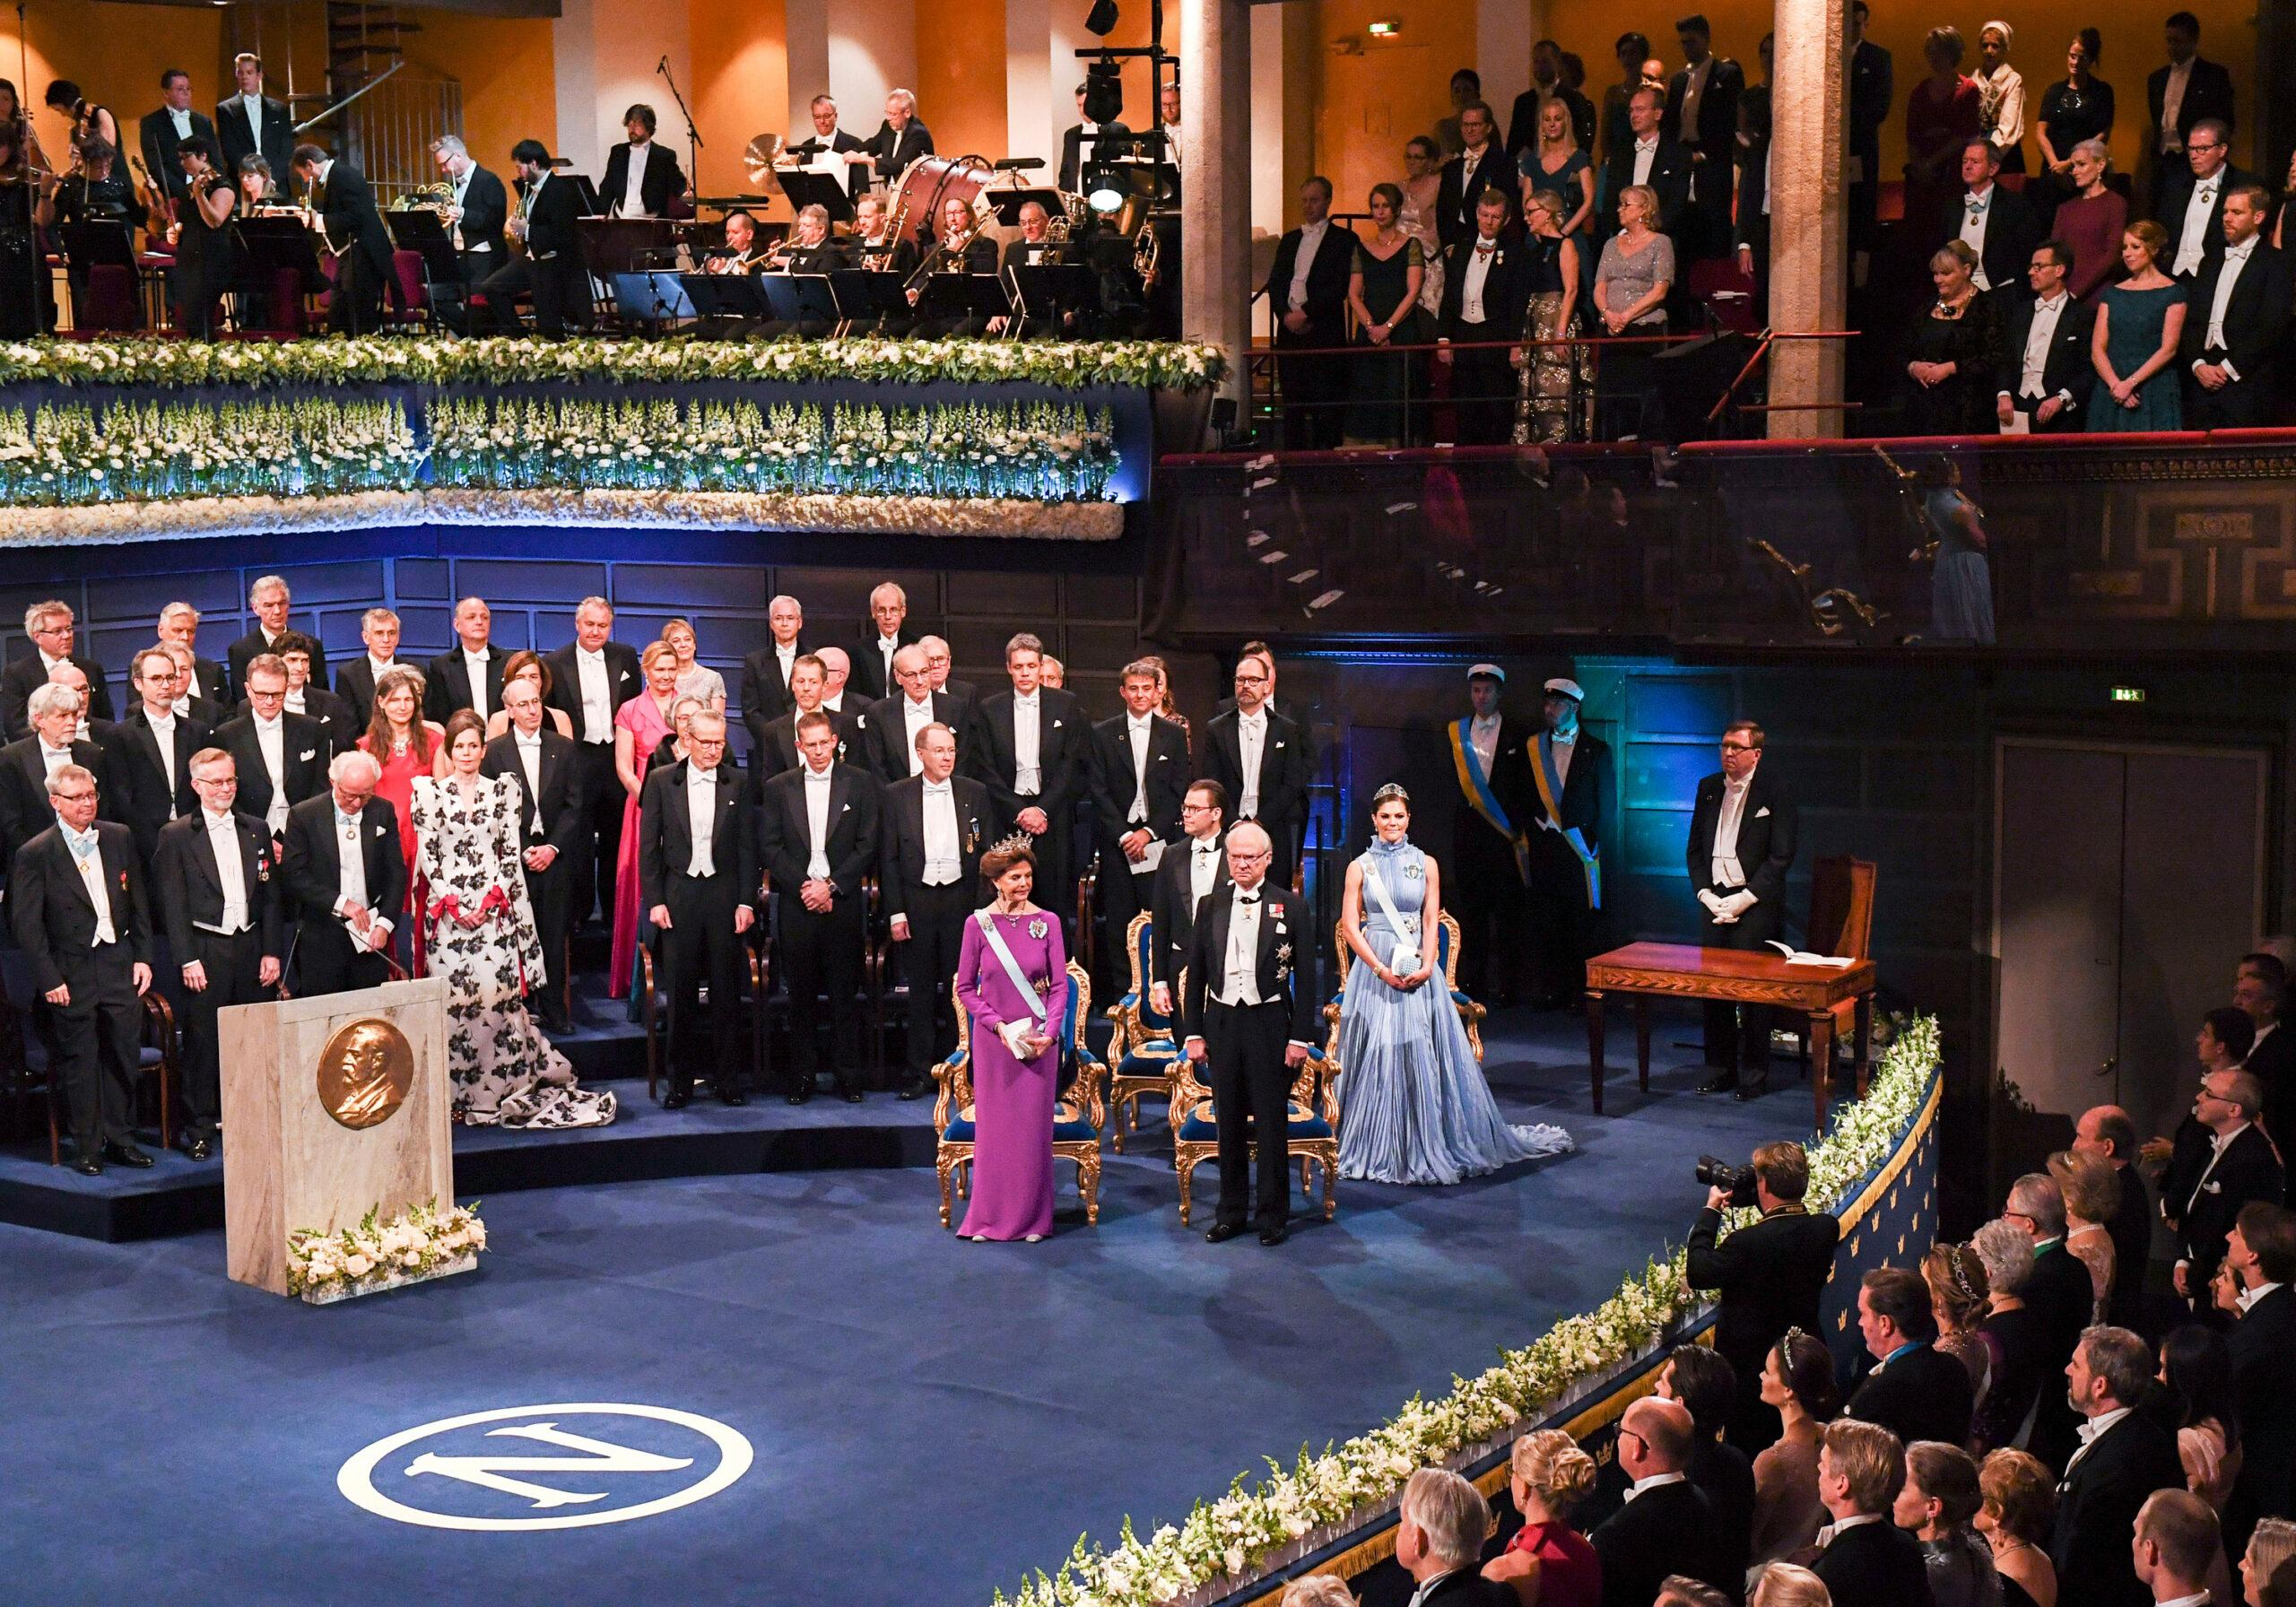 The Nobel Prize award ceremoni in Stockholm Concert Hall, with Queen Silvia, Prince Daniel, King Carl XVI Gustaf and Crown Princess Victoria seen to the right.